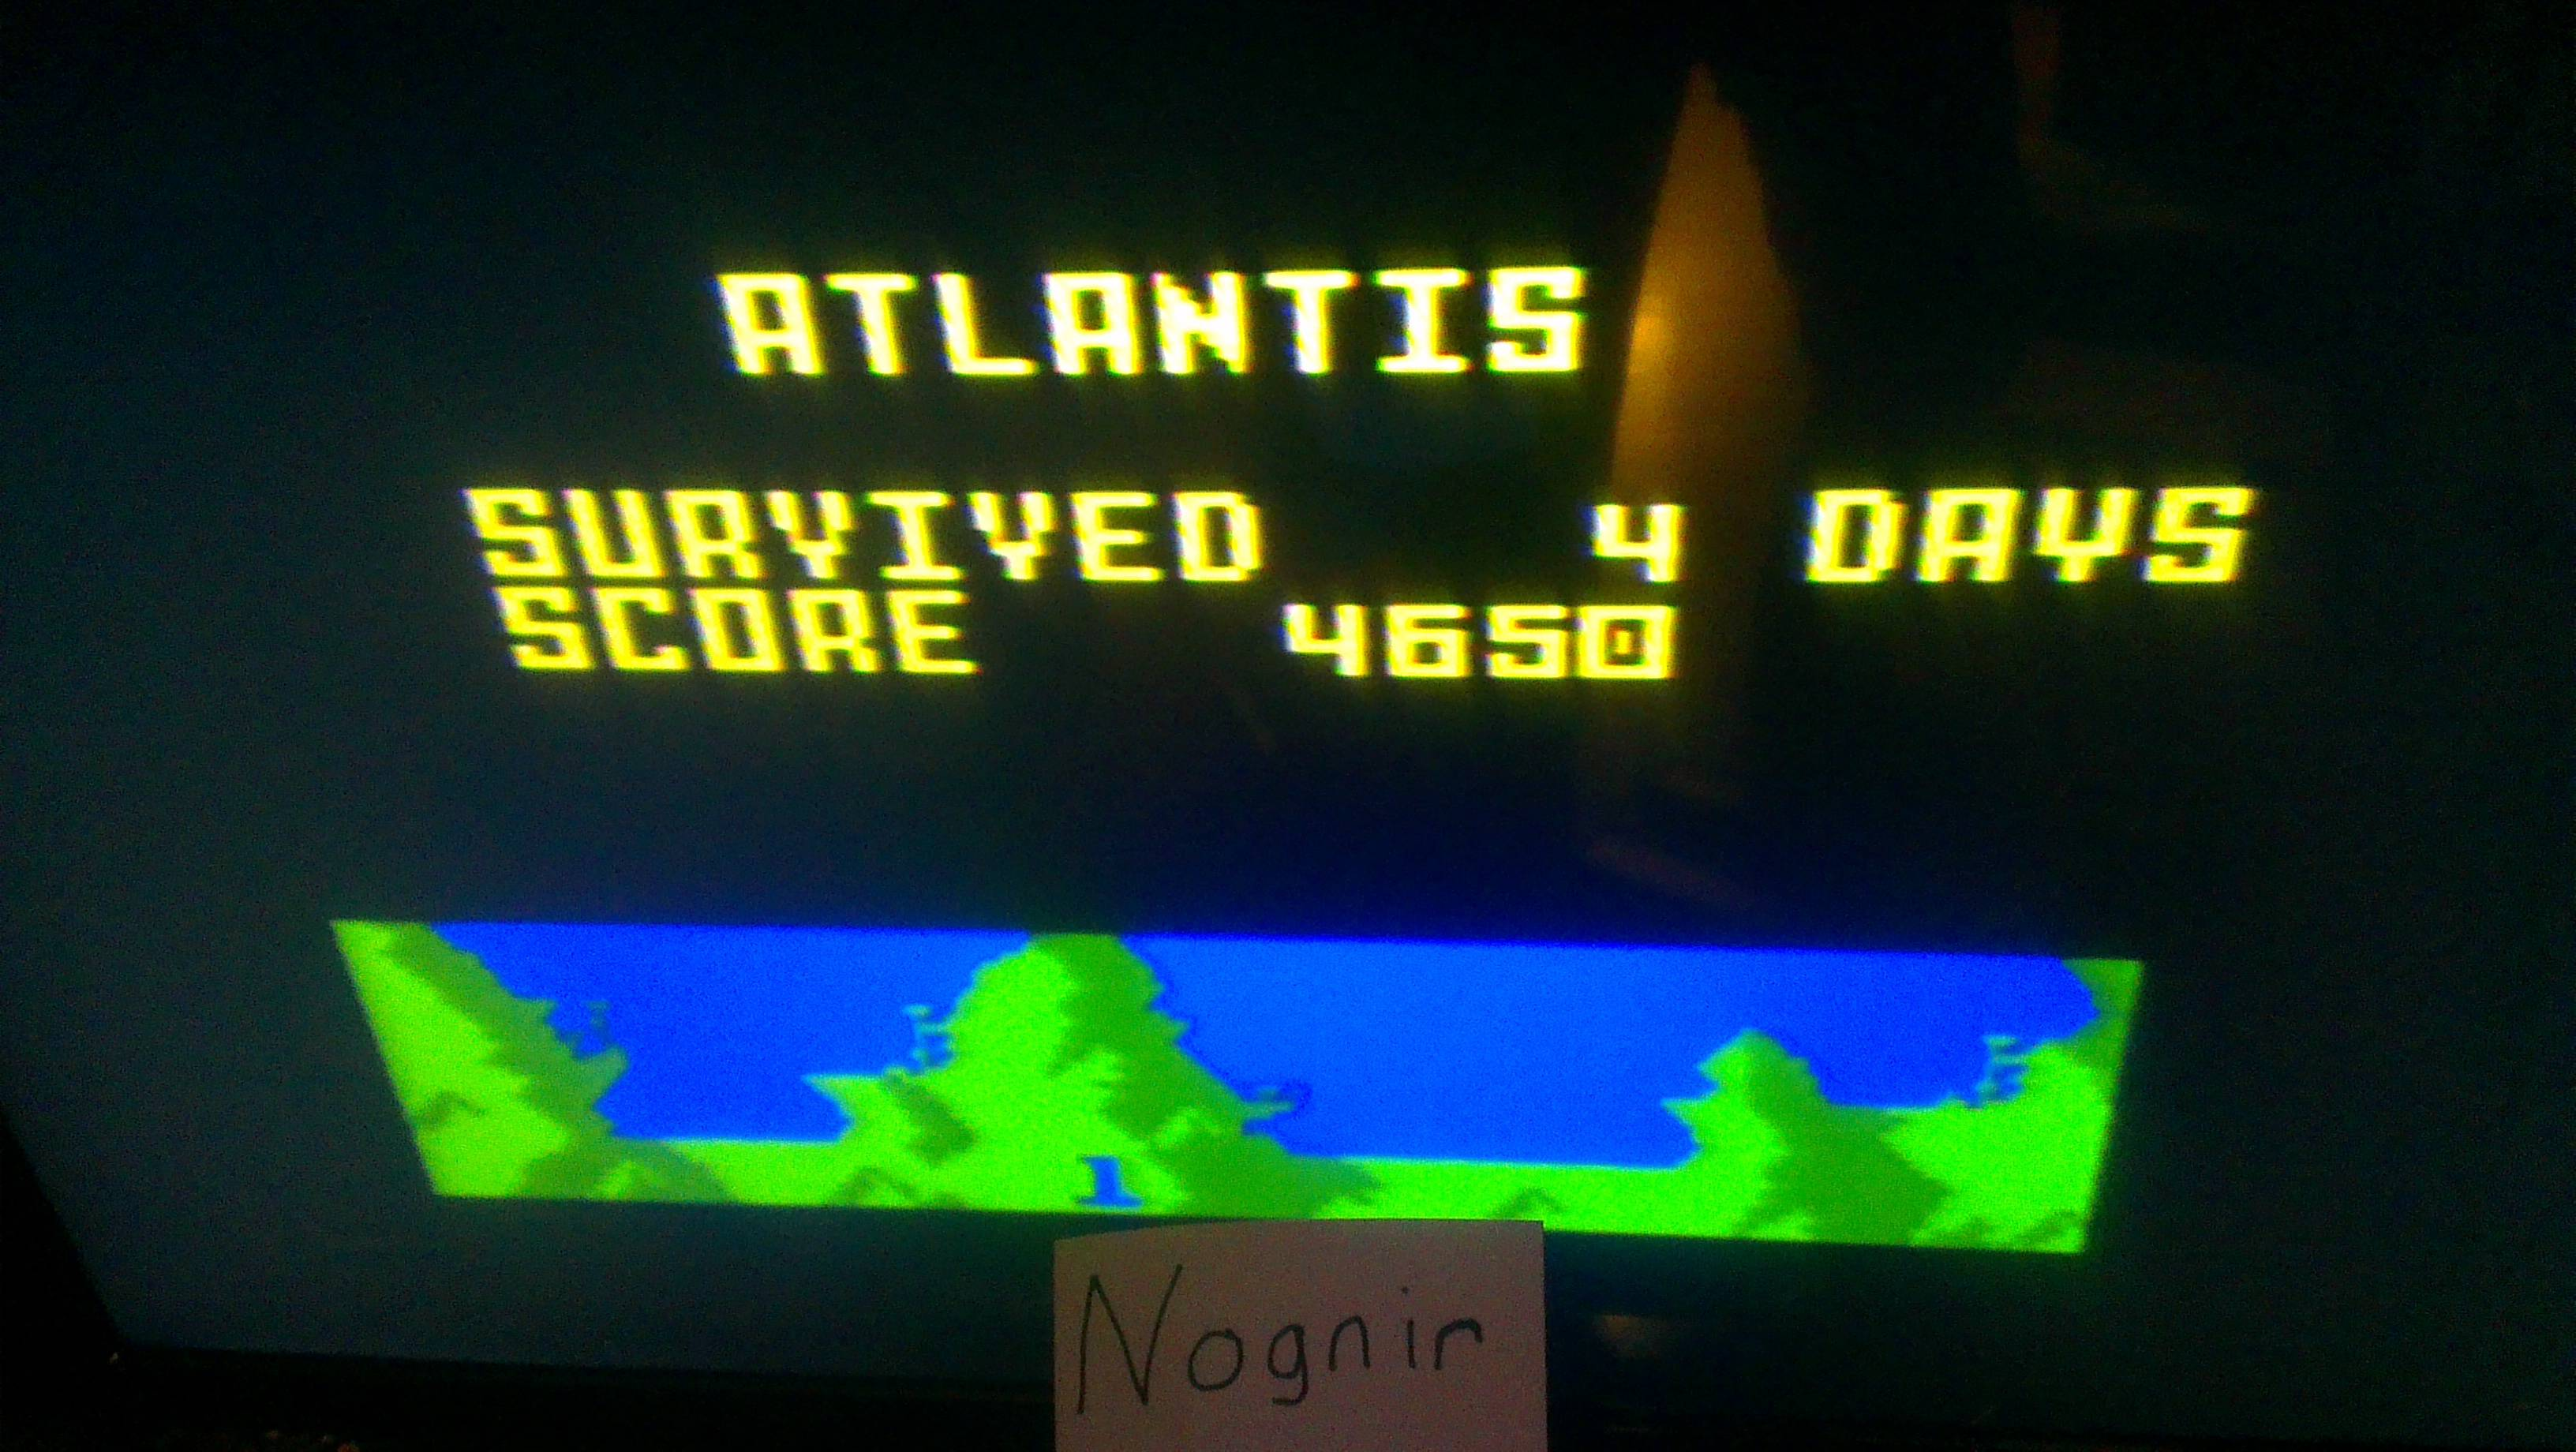 Atlantis: Easy 4,650 points